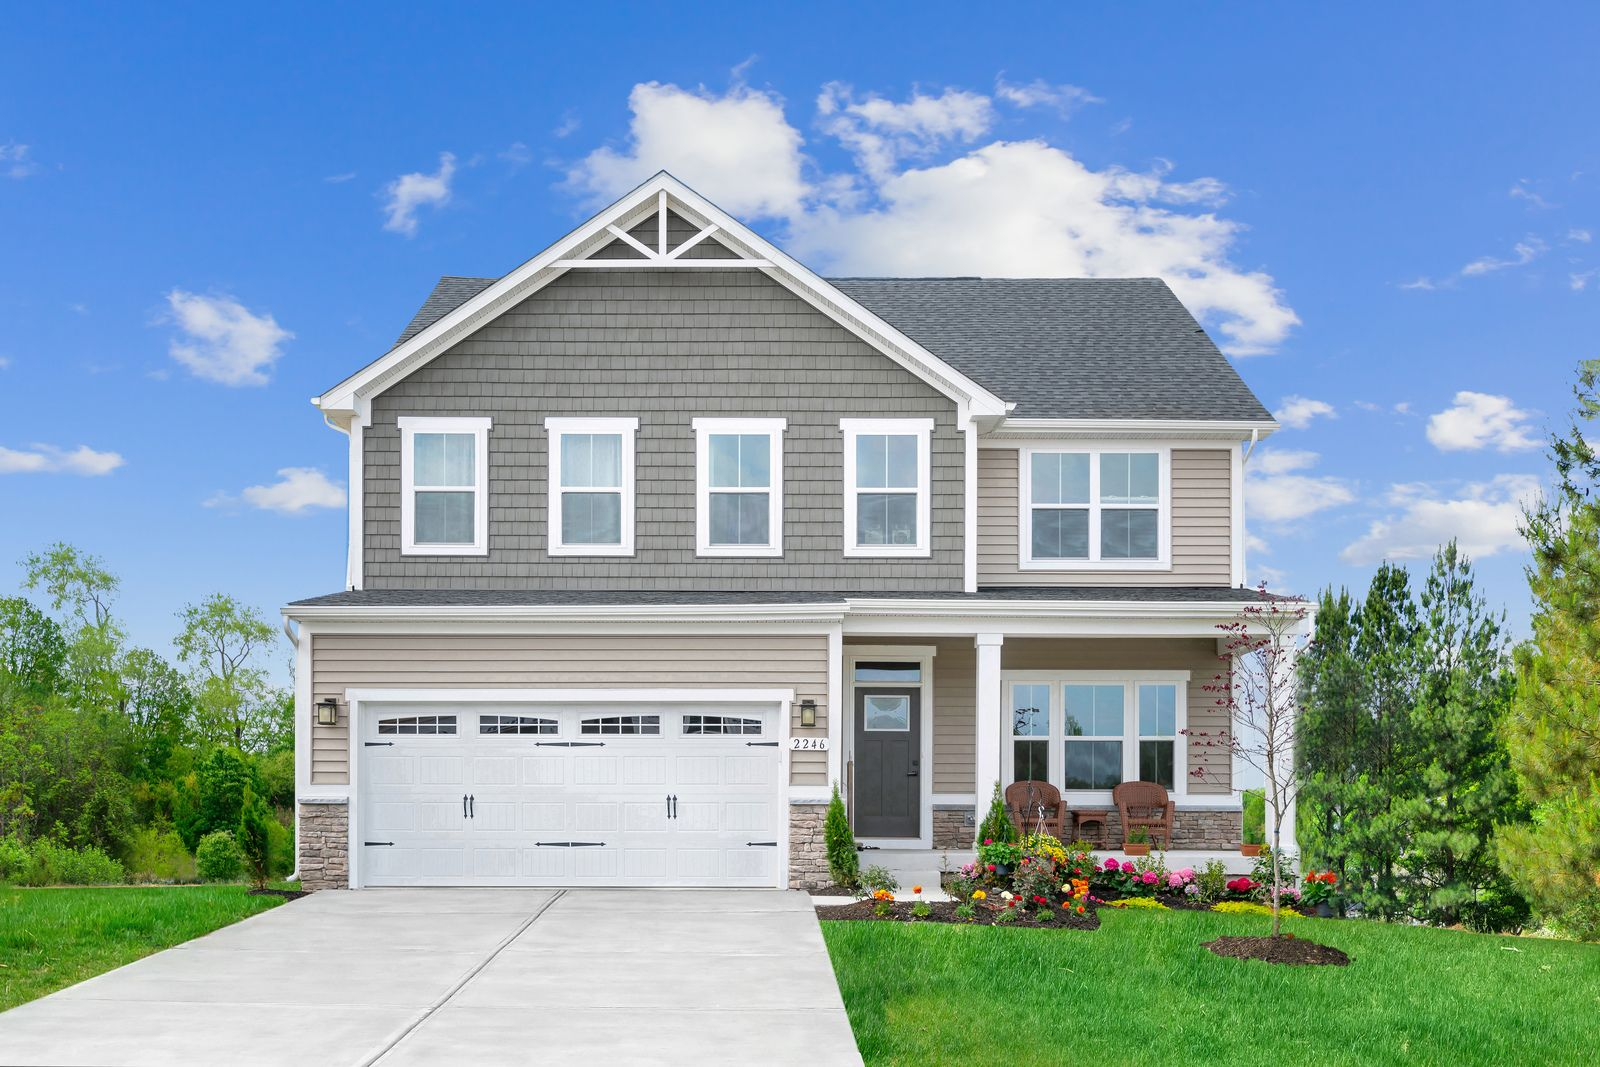 JOIN THE VIP LIST FOR MILLRIDGE:Ranch and 2-story homes minutes to Avon Commons and I-90. Enjoy new larger homesites and low Lorain County taxes!Click here to join the VIP List!